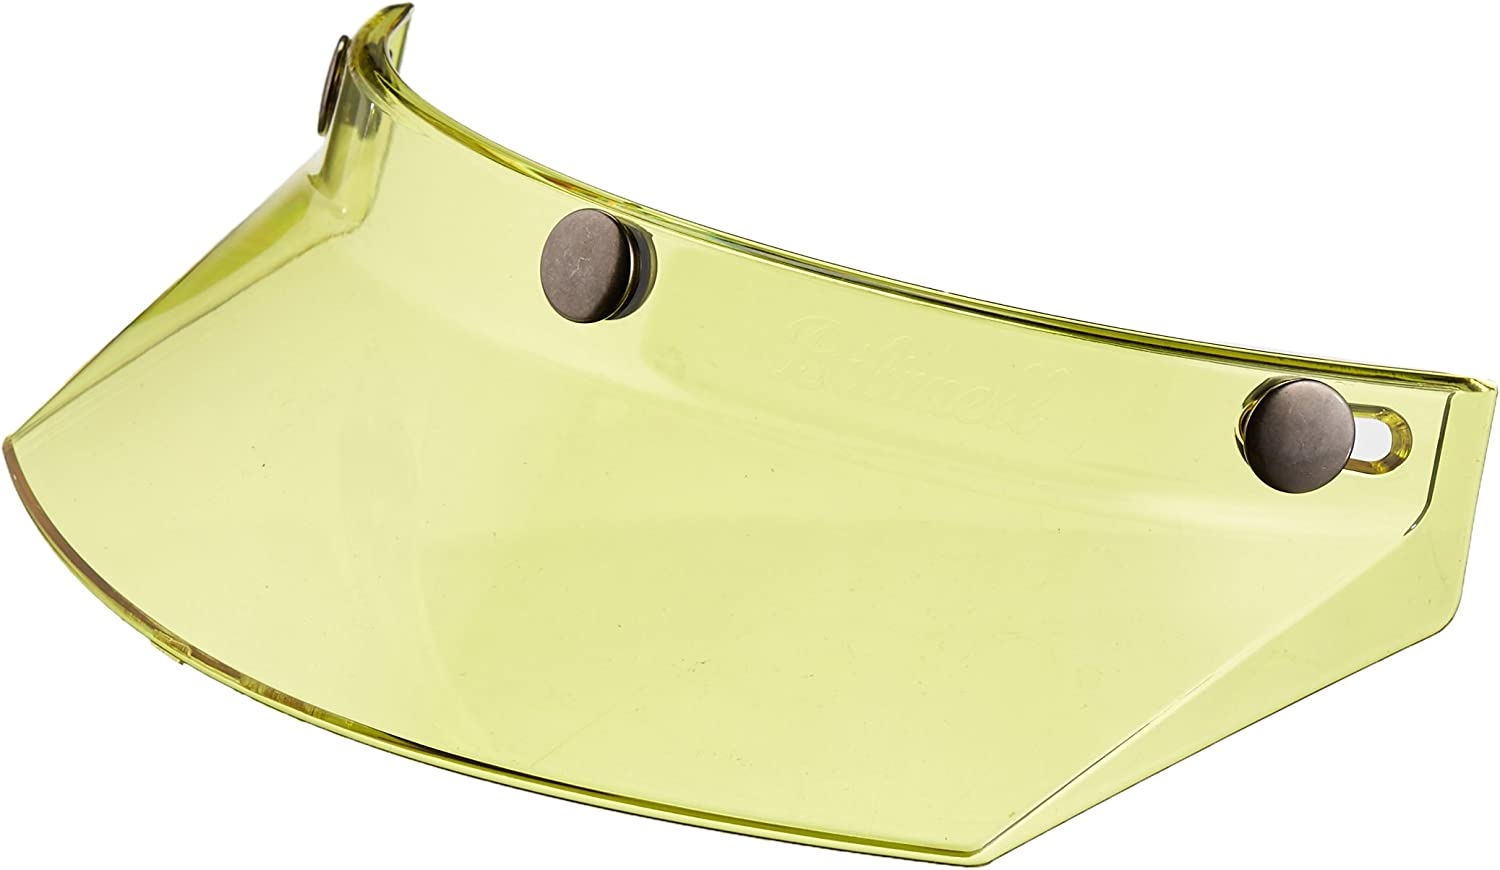 Biltwell MV-YEL-00-TN 3-Snap Moto Visor Yellow, One Size for Most 3-Snap Style Helmets